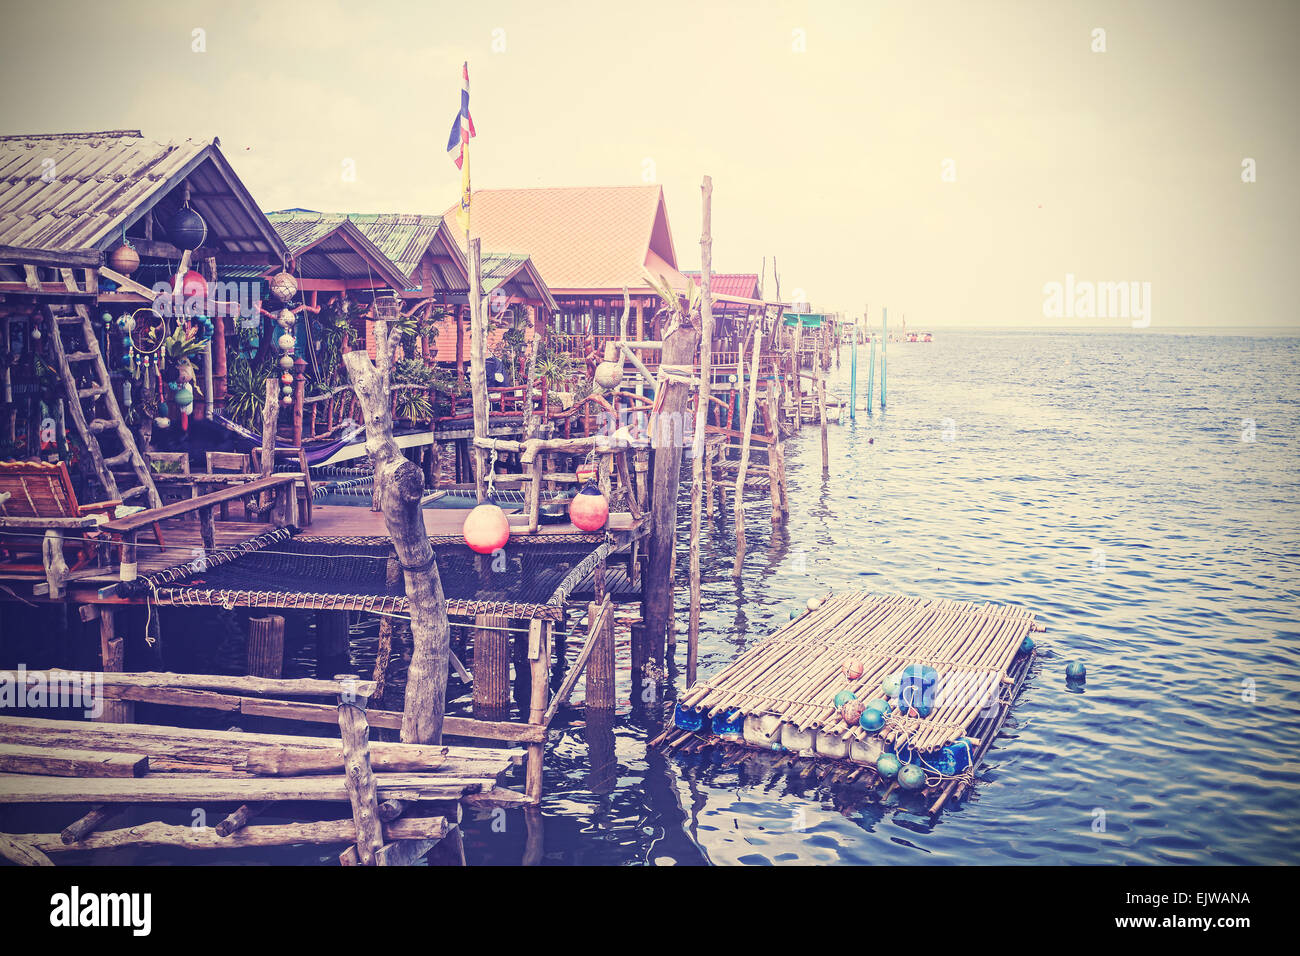 Retro stylized houses on water, settlement on Lanta Island, Thailand. - Stock Image